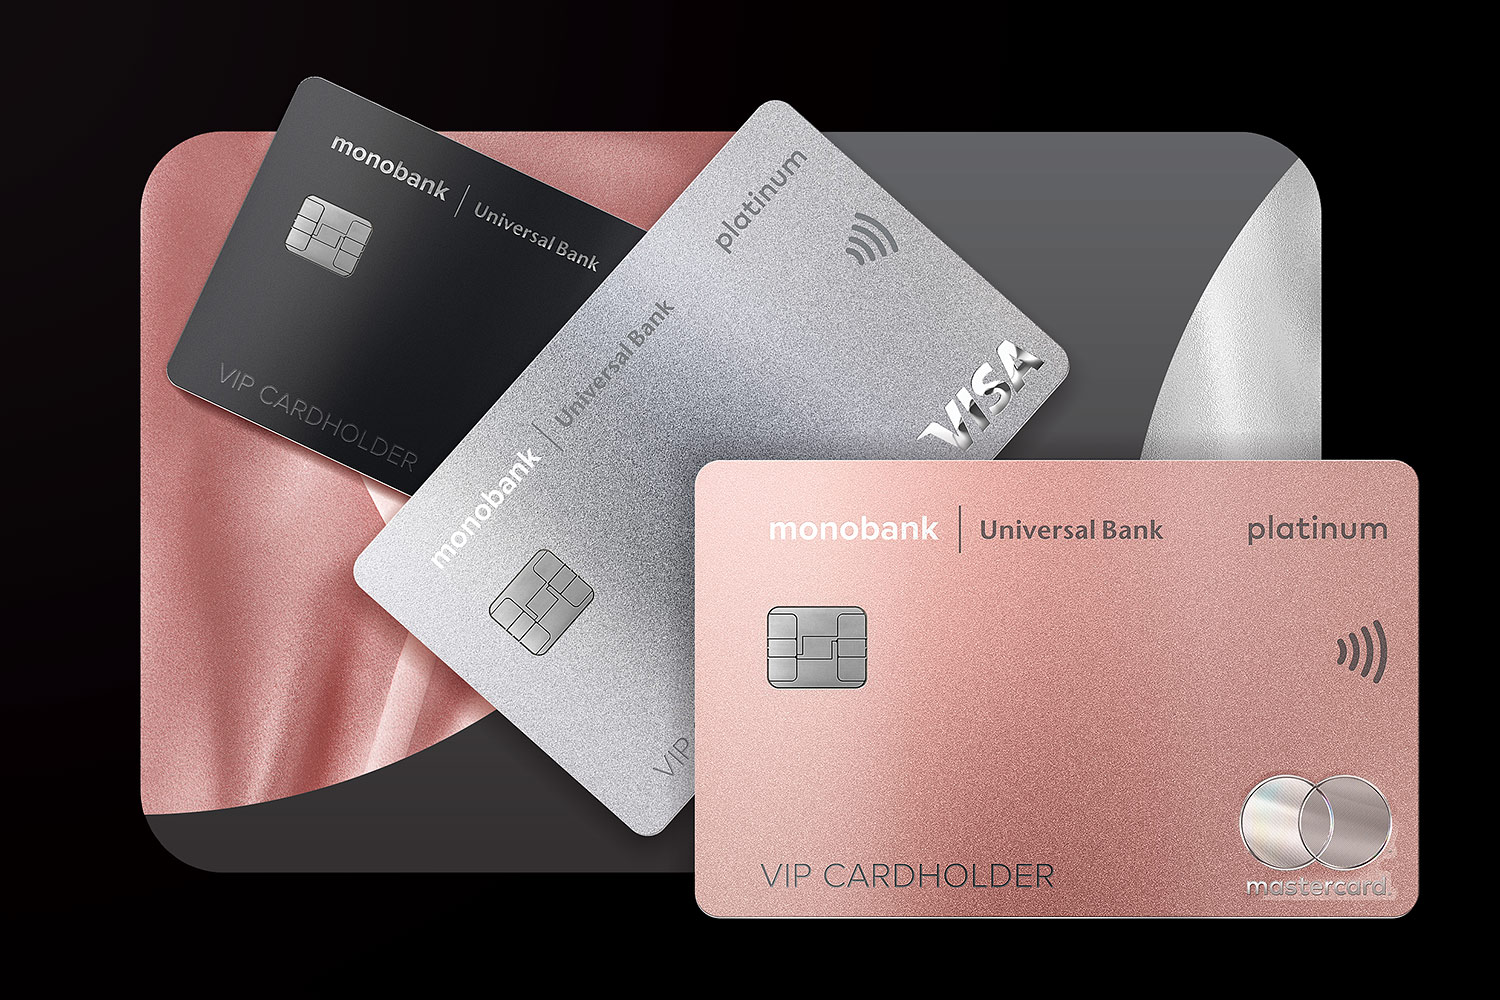 monobank platinum payment cards with a metallic effect.